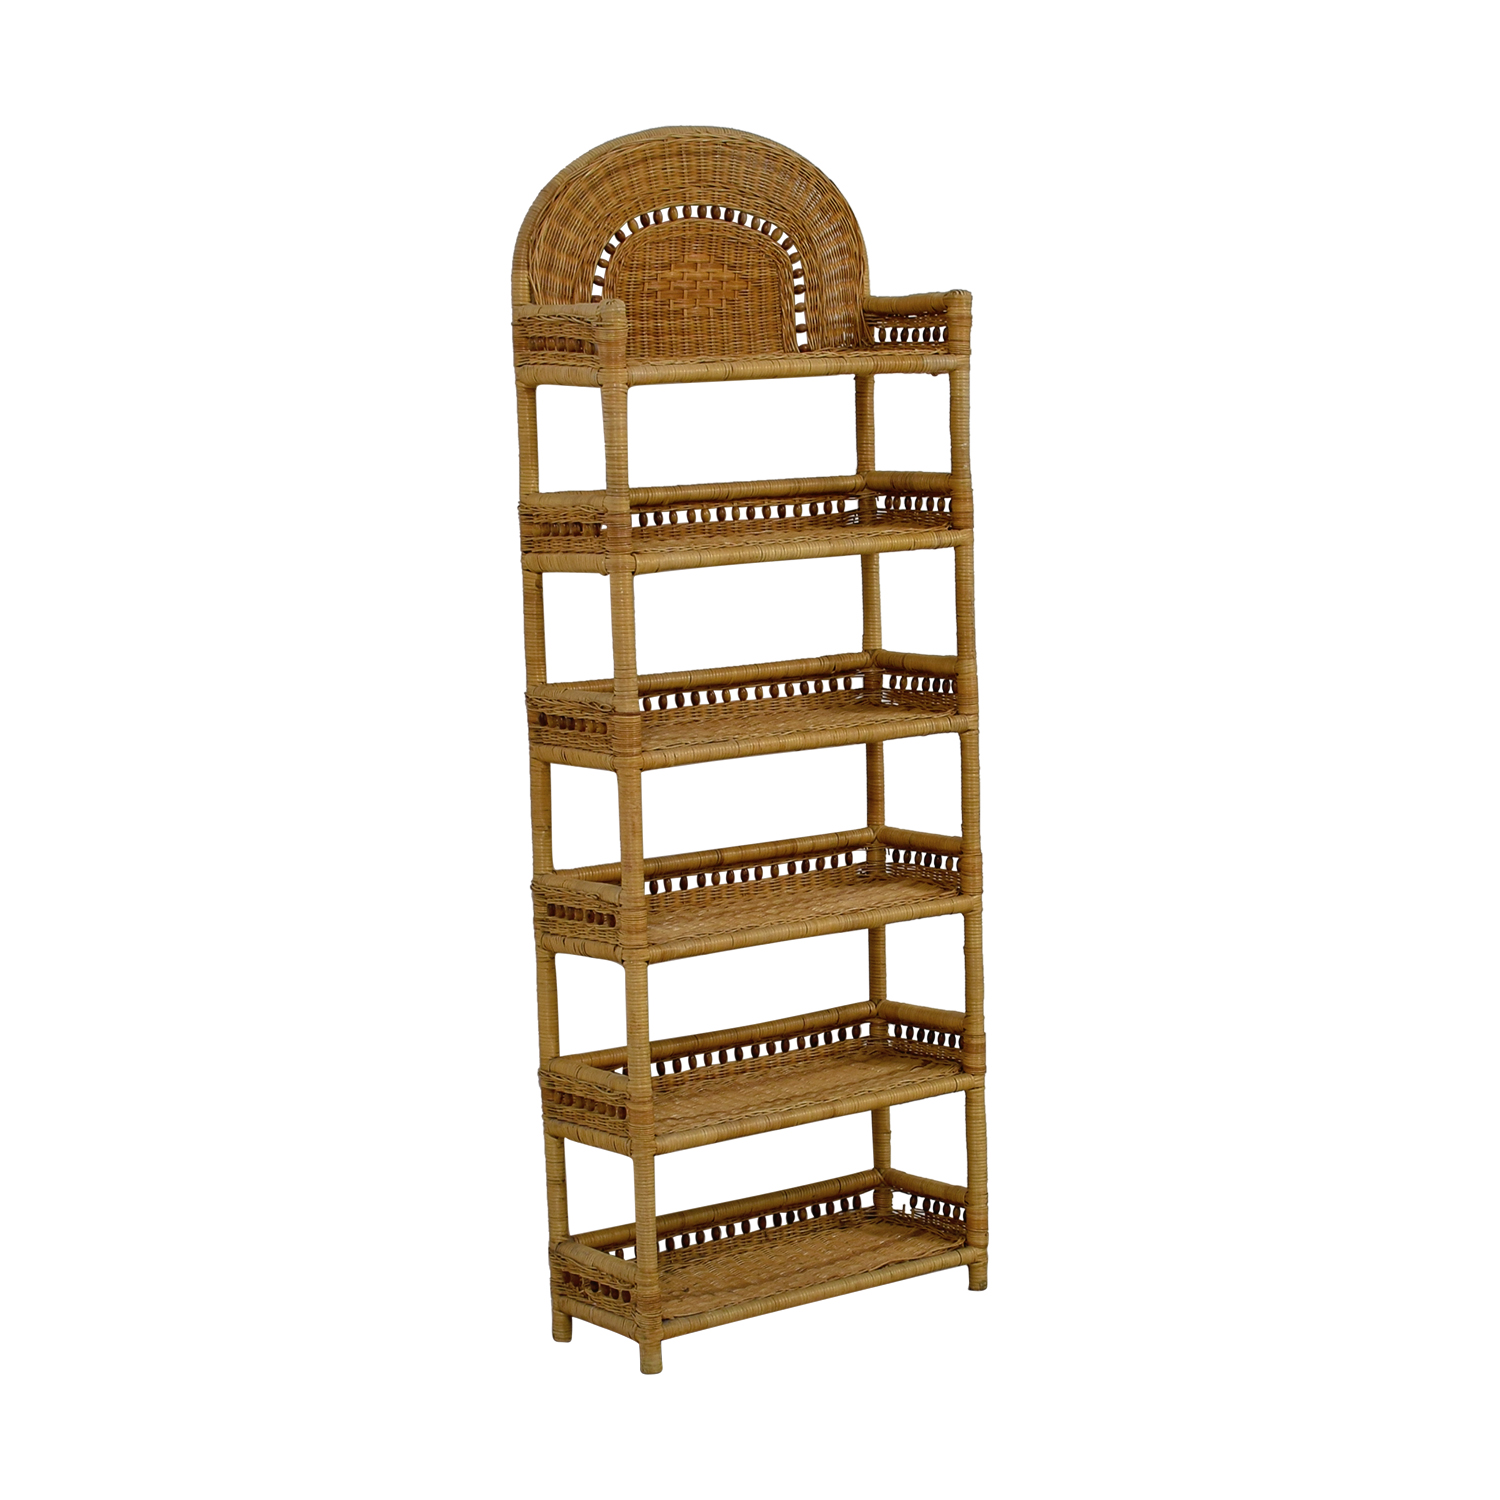 Wicker Book Shelf dimensions